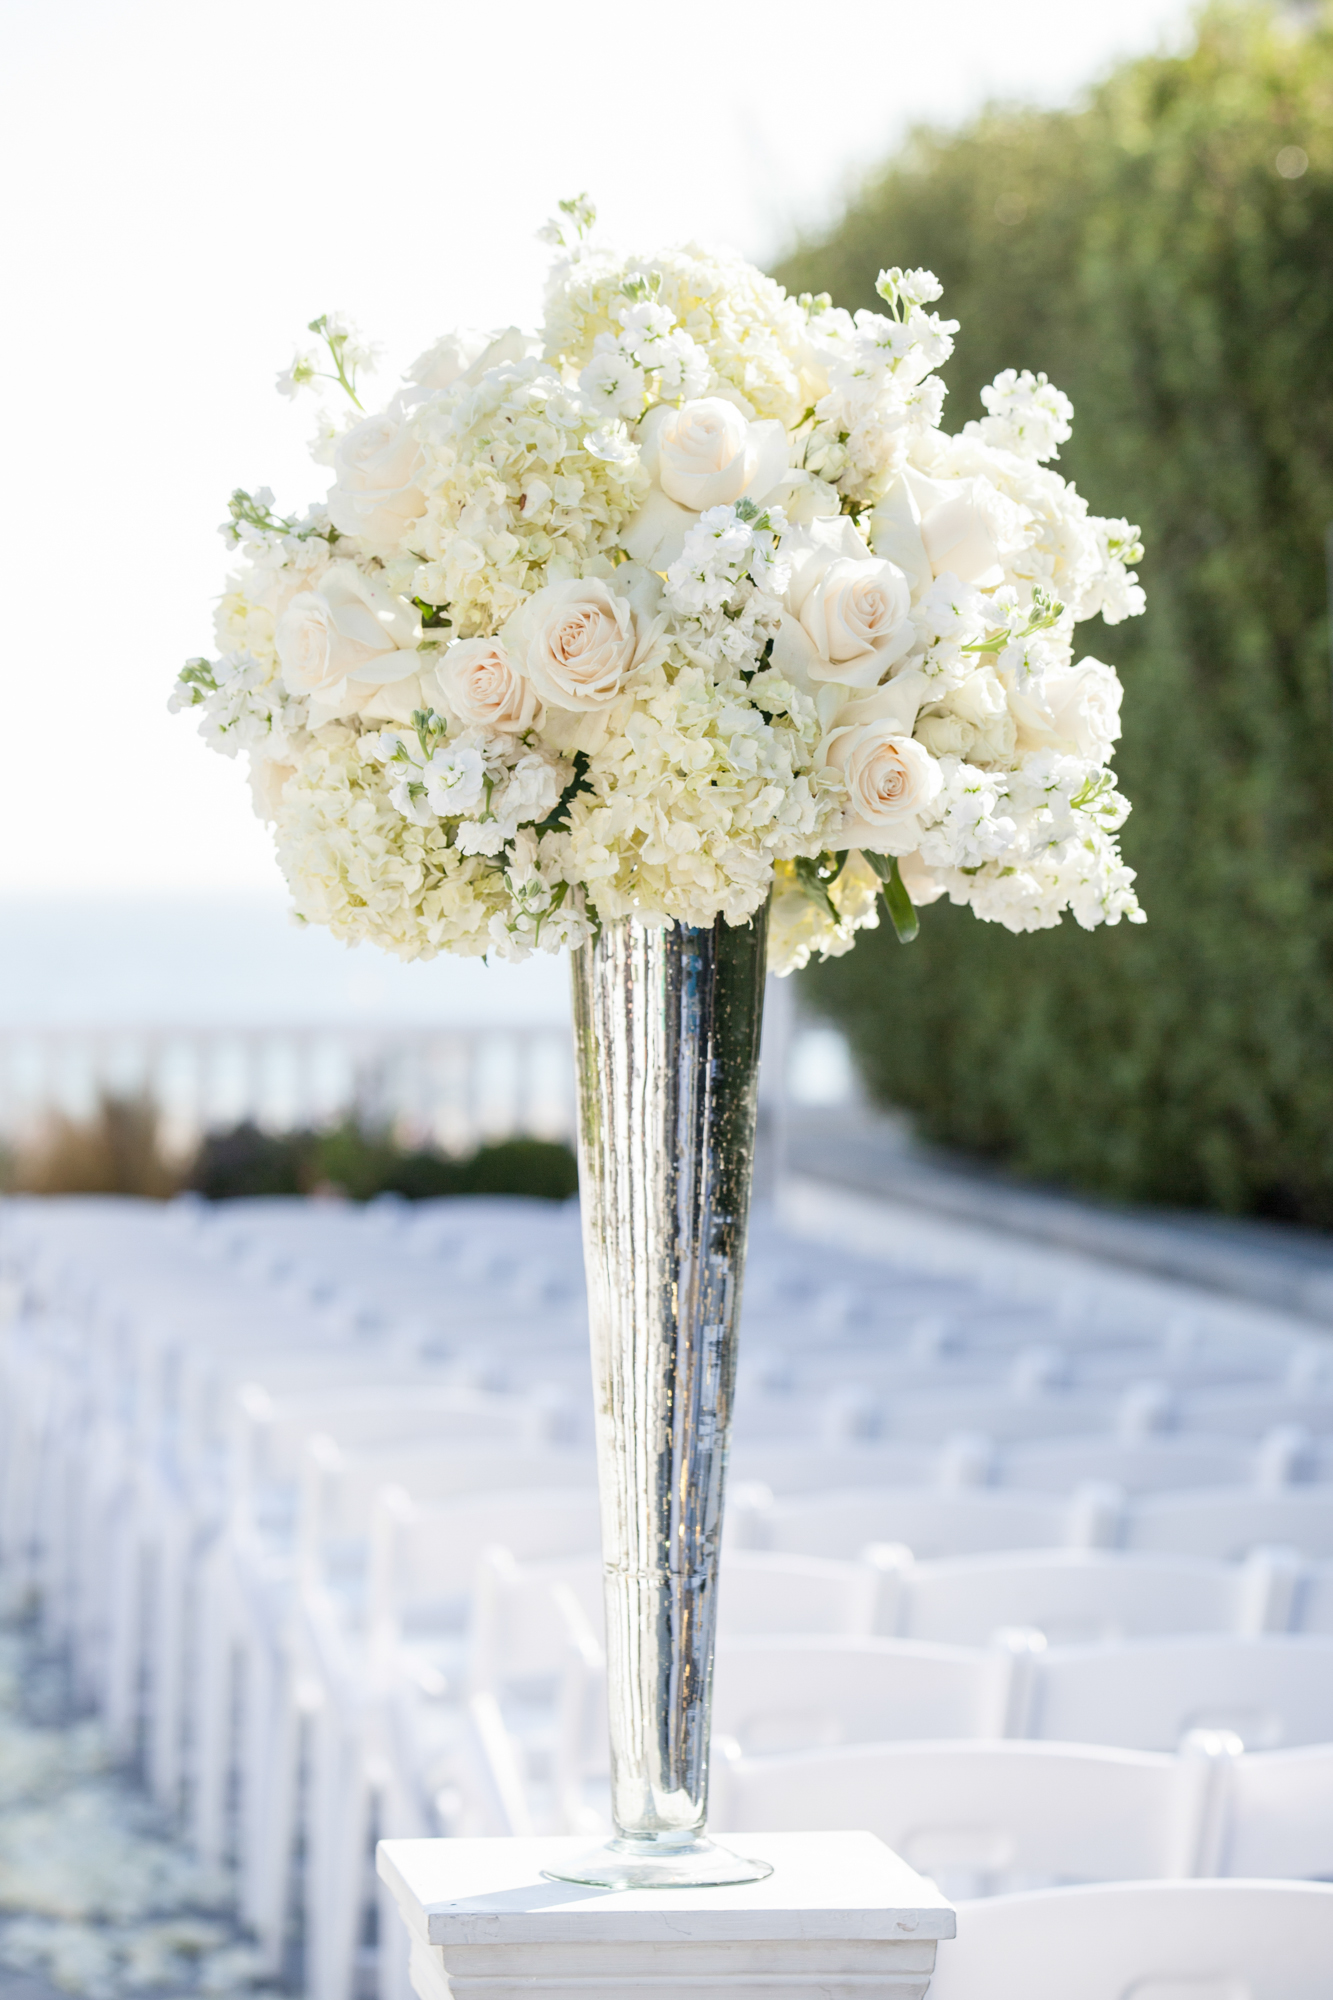 Rent Vases Wedding Event Centerpieces Atlanta Chiavari